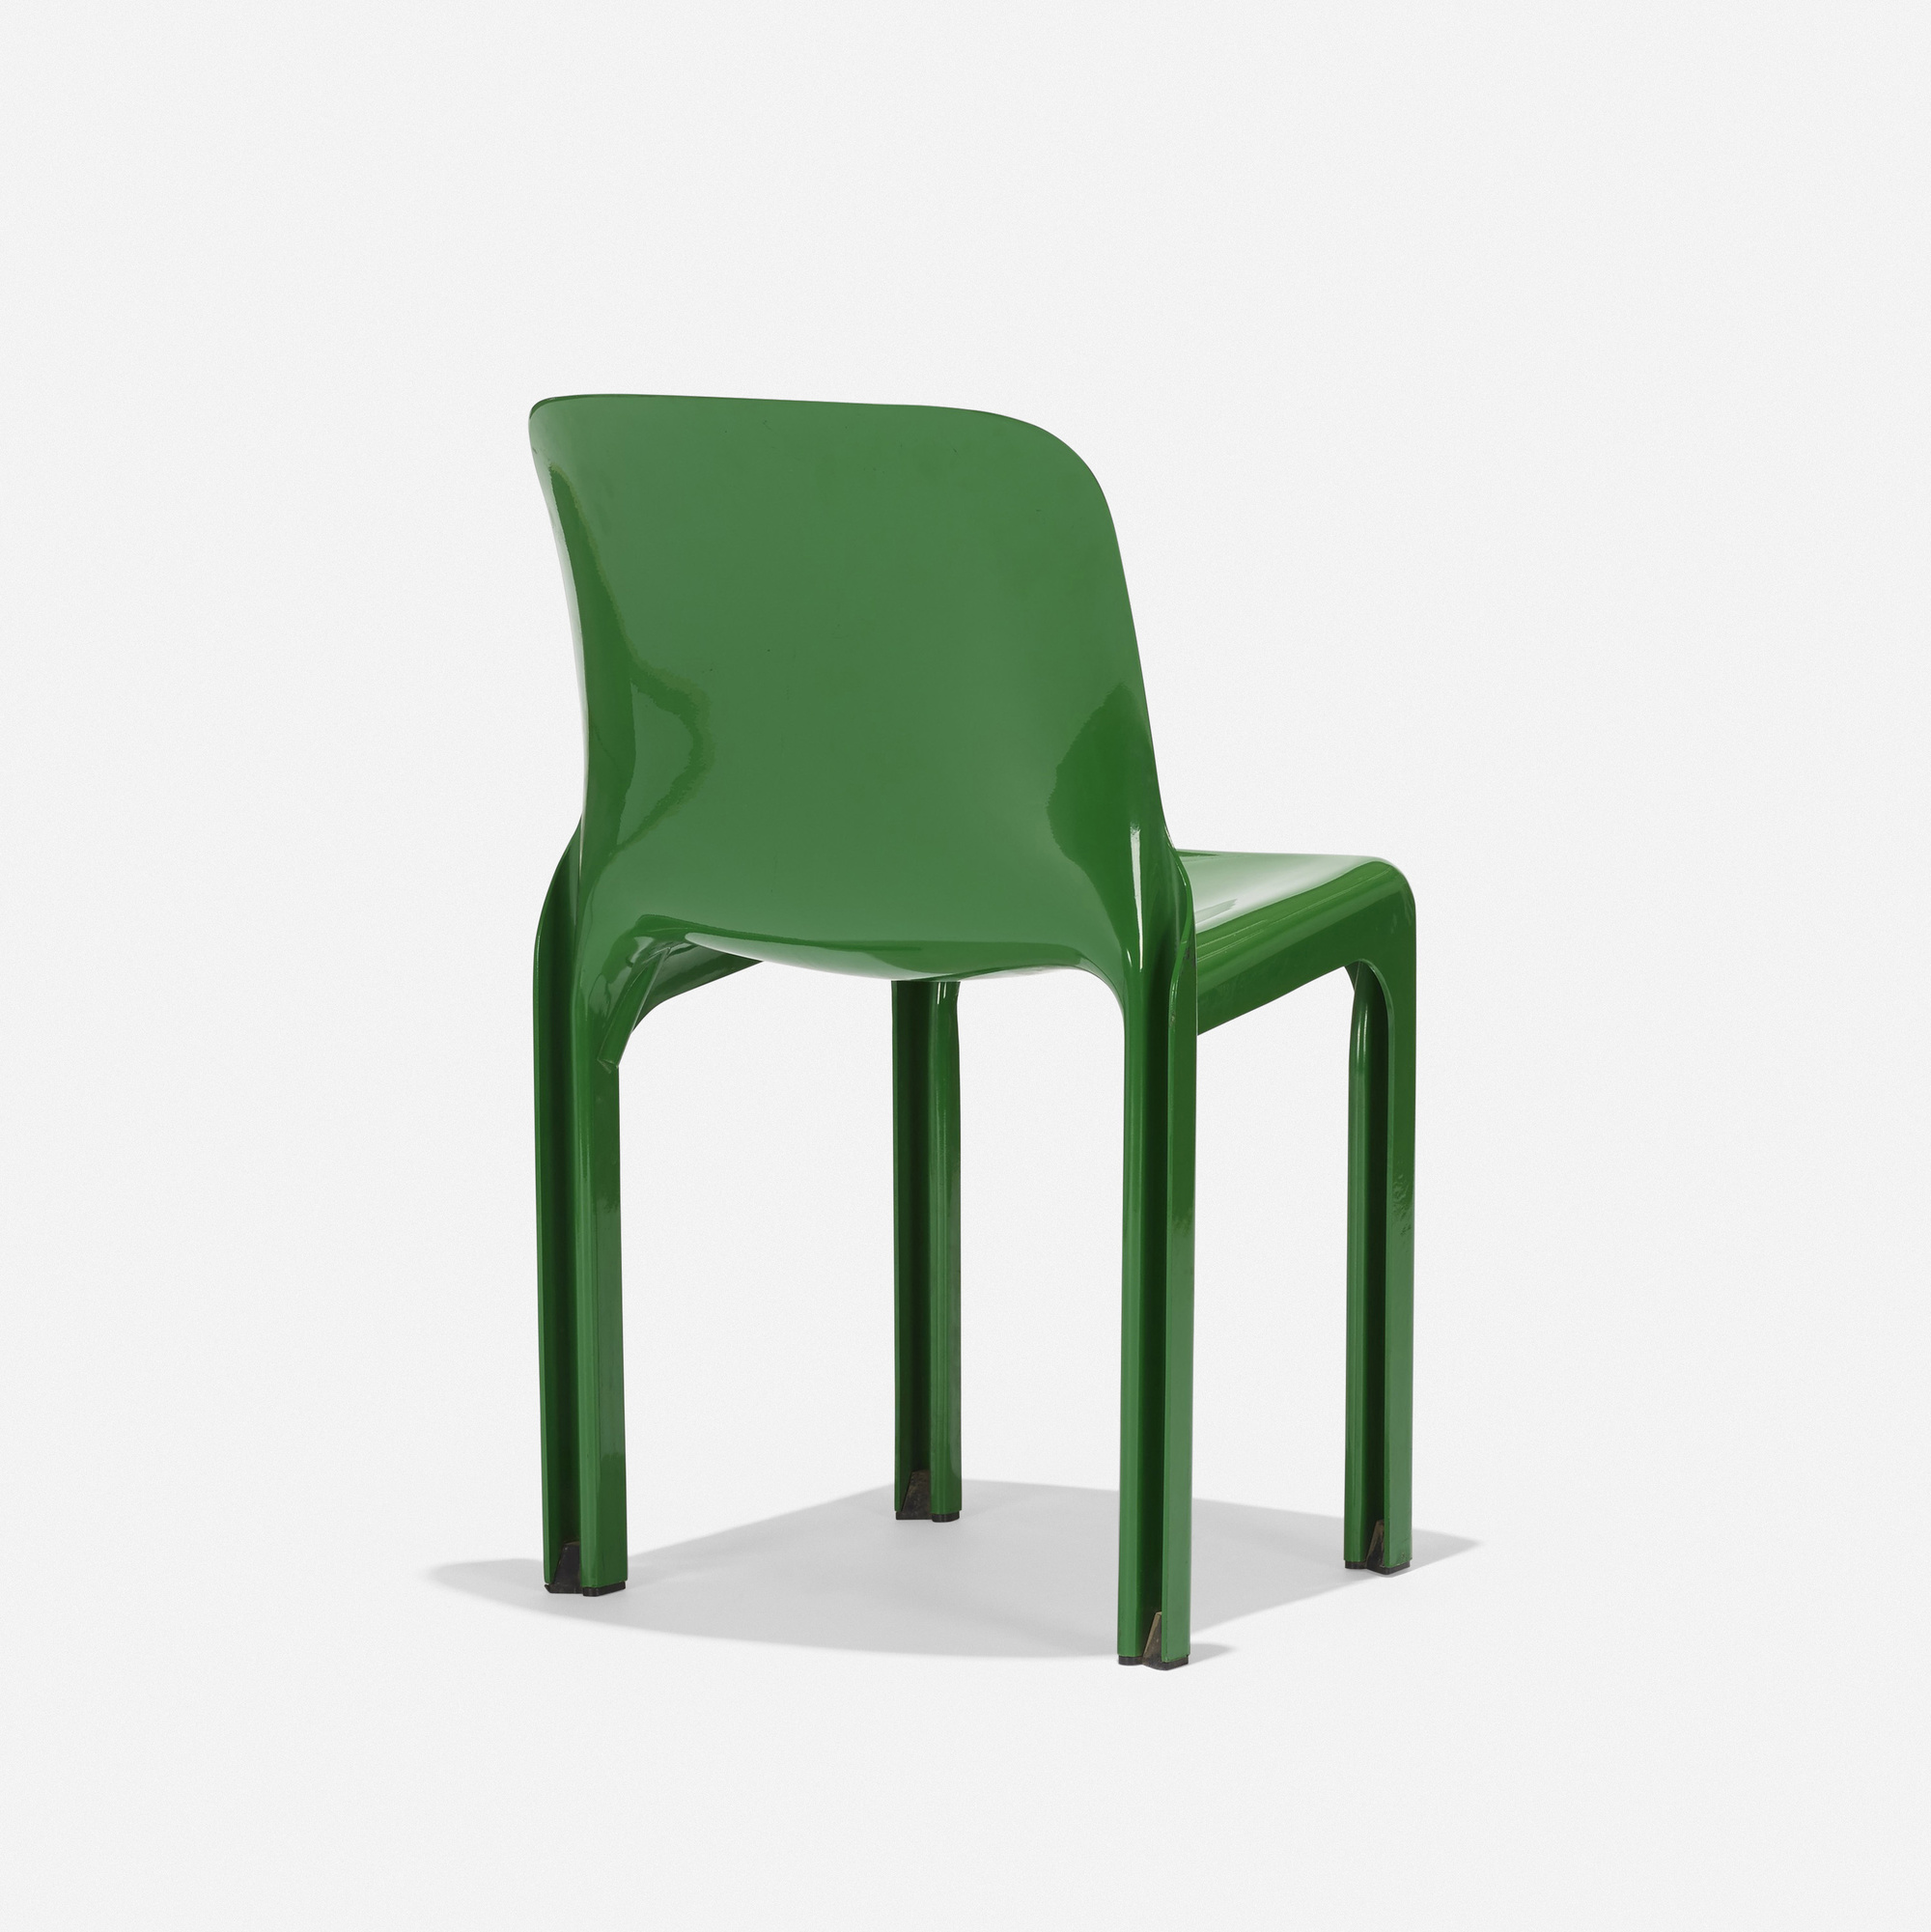 107: Vico Magistretti / Selene Stacking chair (3 of 4)